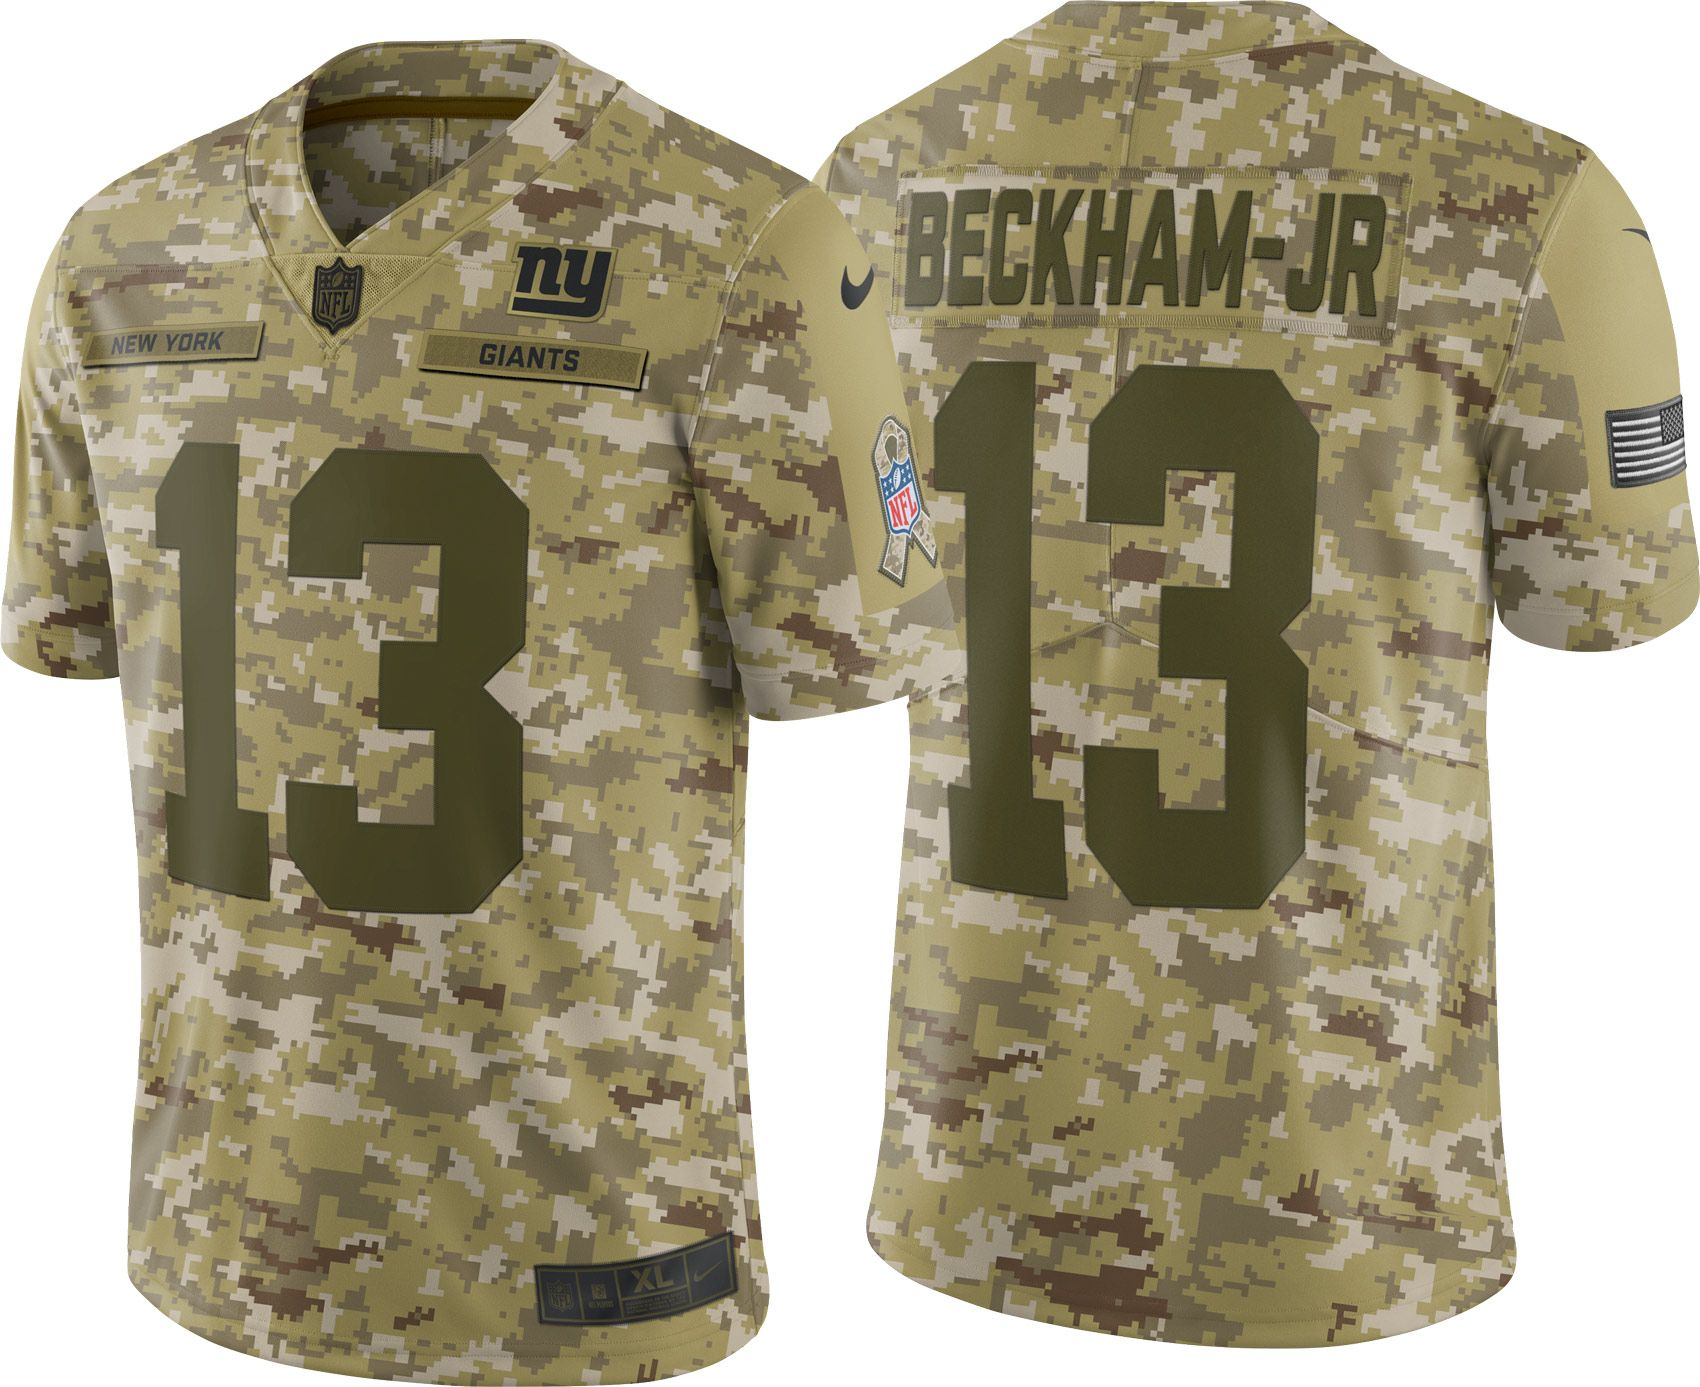 cheaper f2299 c5f97 Odell Military Jersey Jr Beckham piety.byronrabe.com